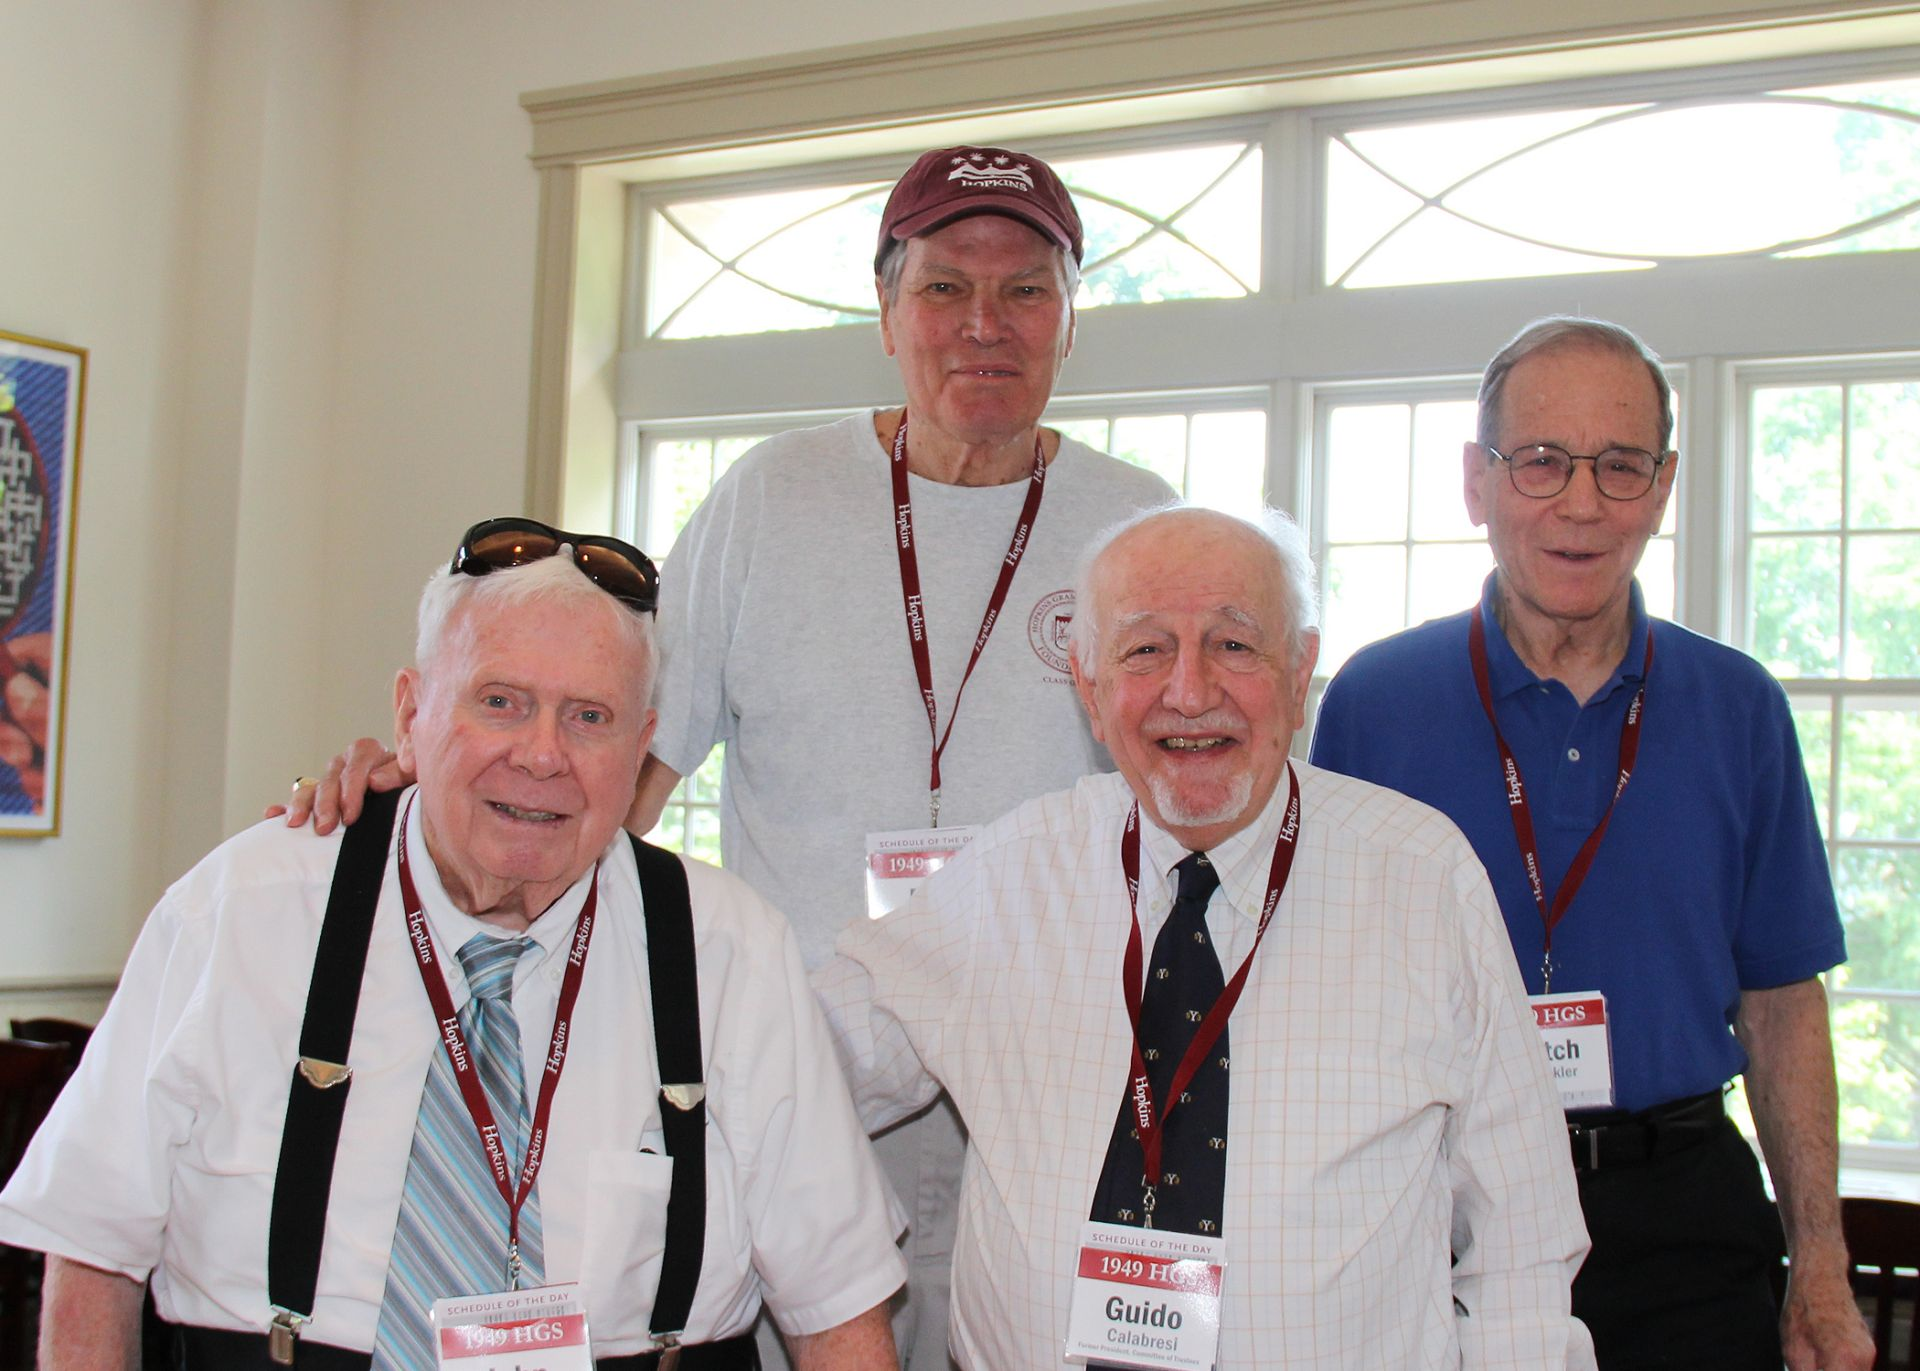 1949 HGS - 65th Reunion